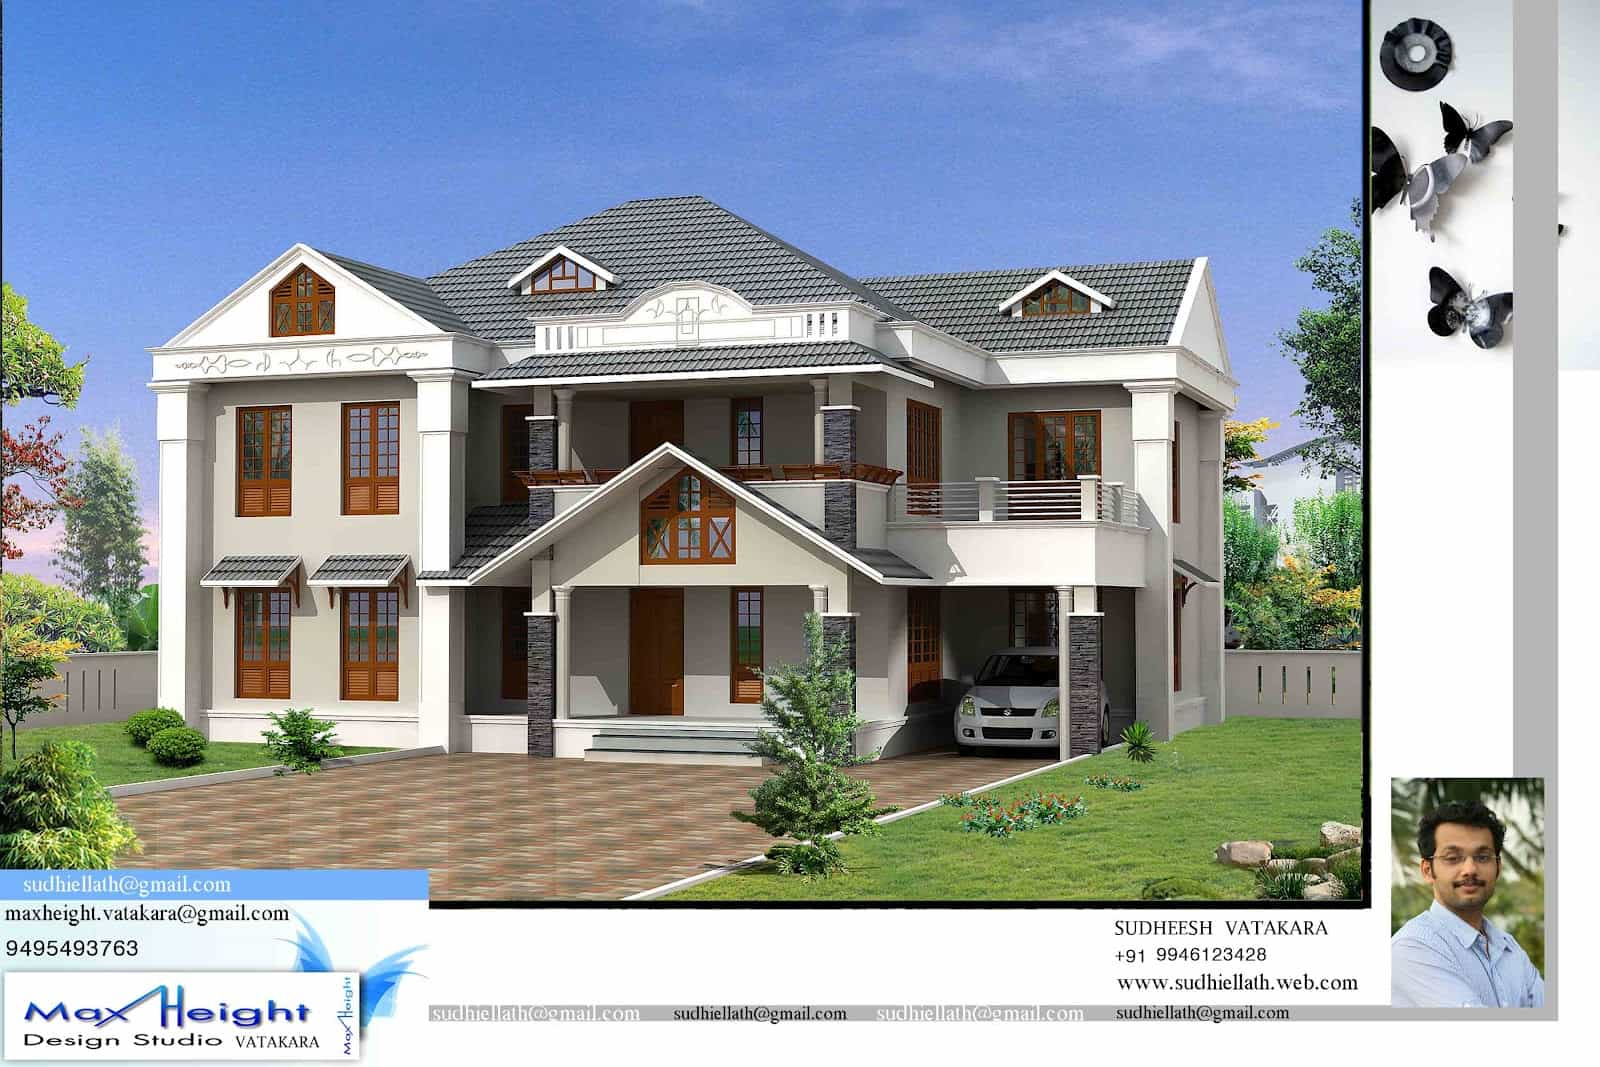 Kerala house model latest kerala style home design for Kerala home designs pictures